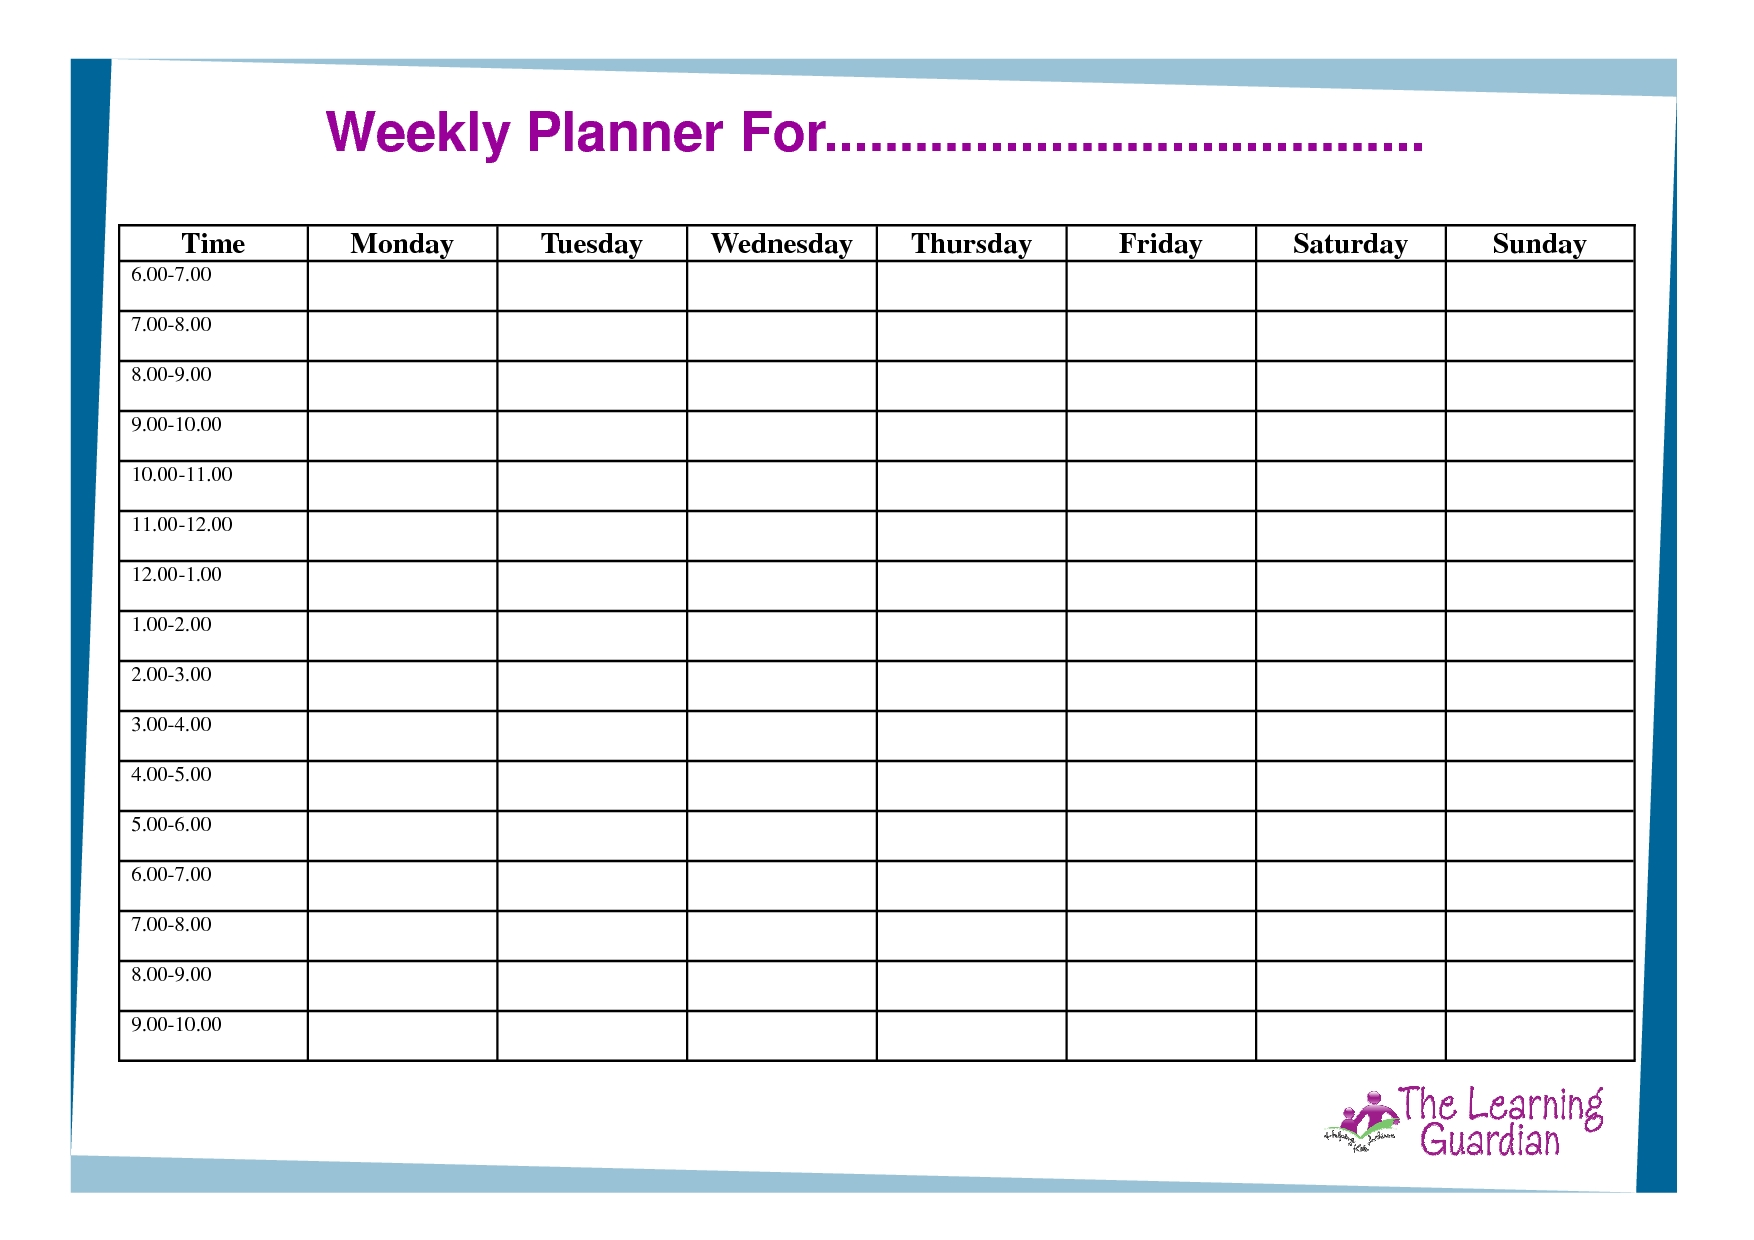 Weekly Planner Printable With Times - Yeniscale.co  Online Daily Time Slot Planner